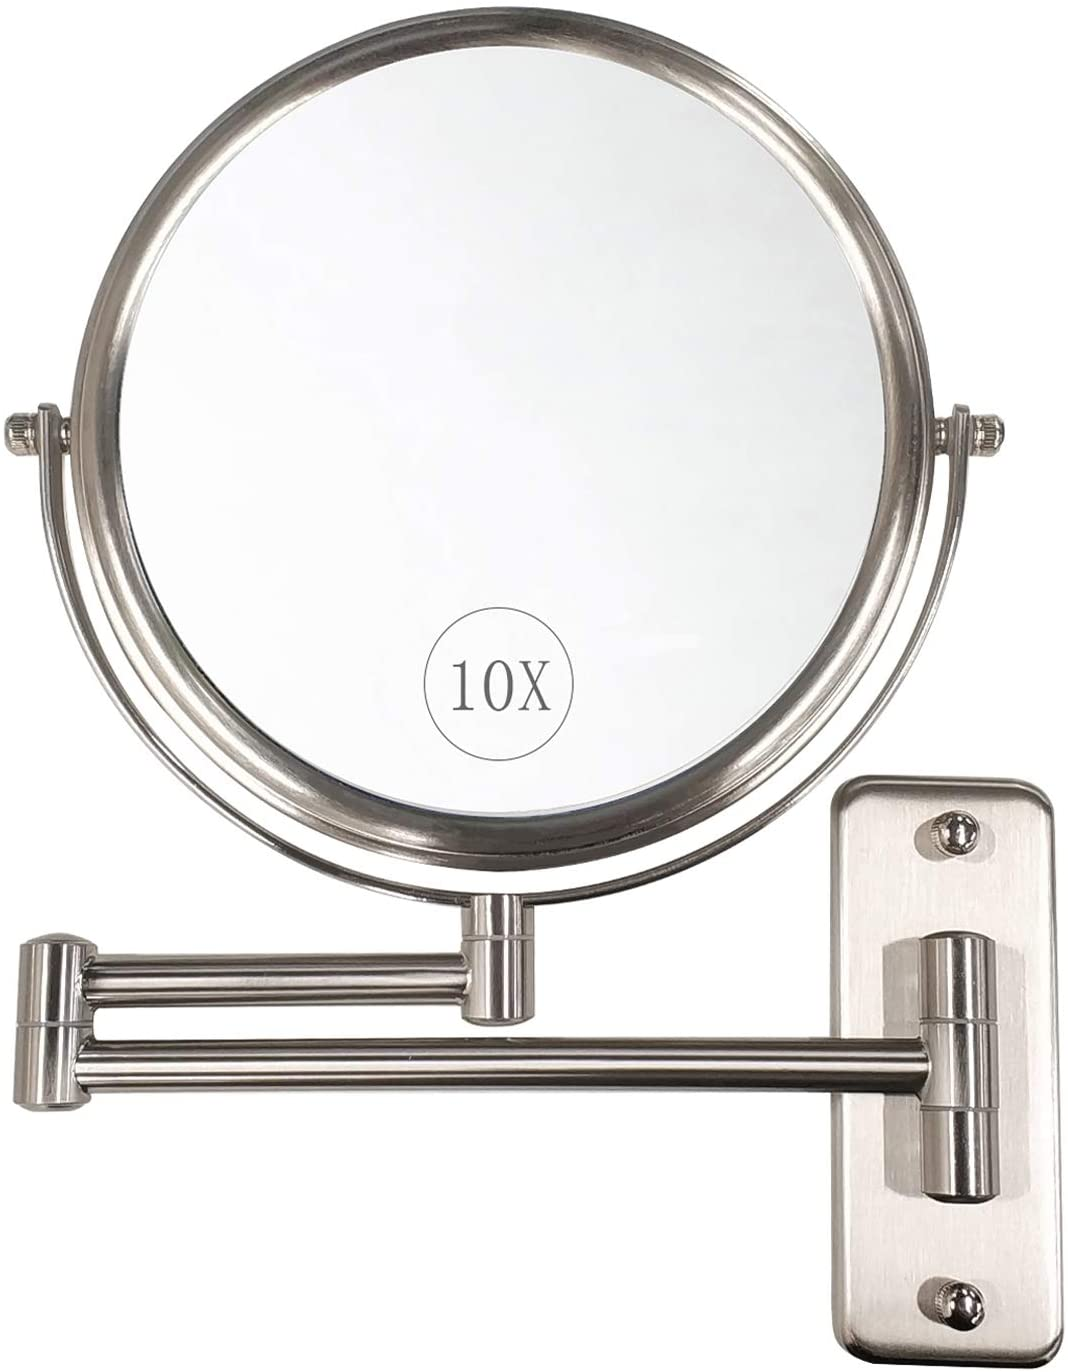 ALHAKIN 10X Non-Lighted Wall Mounted Makeup Mirror Reviews